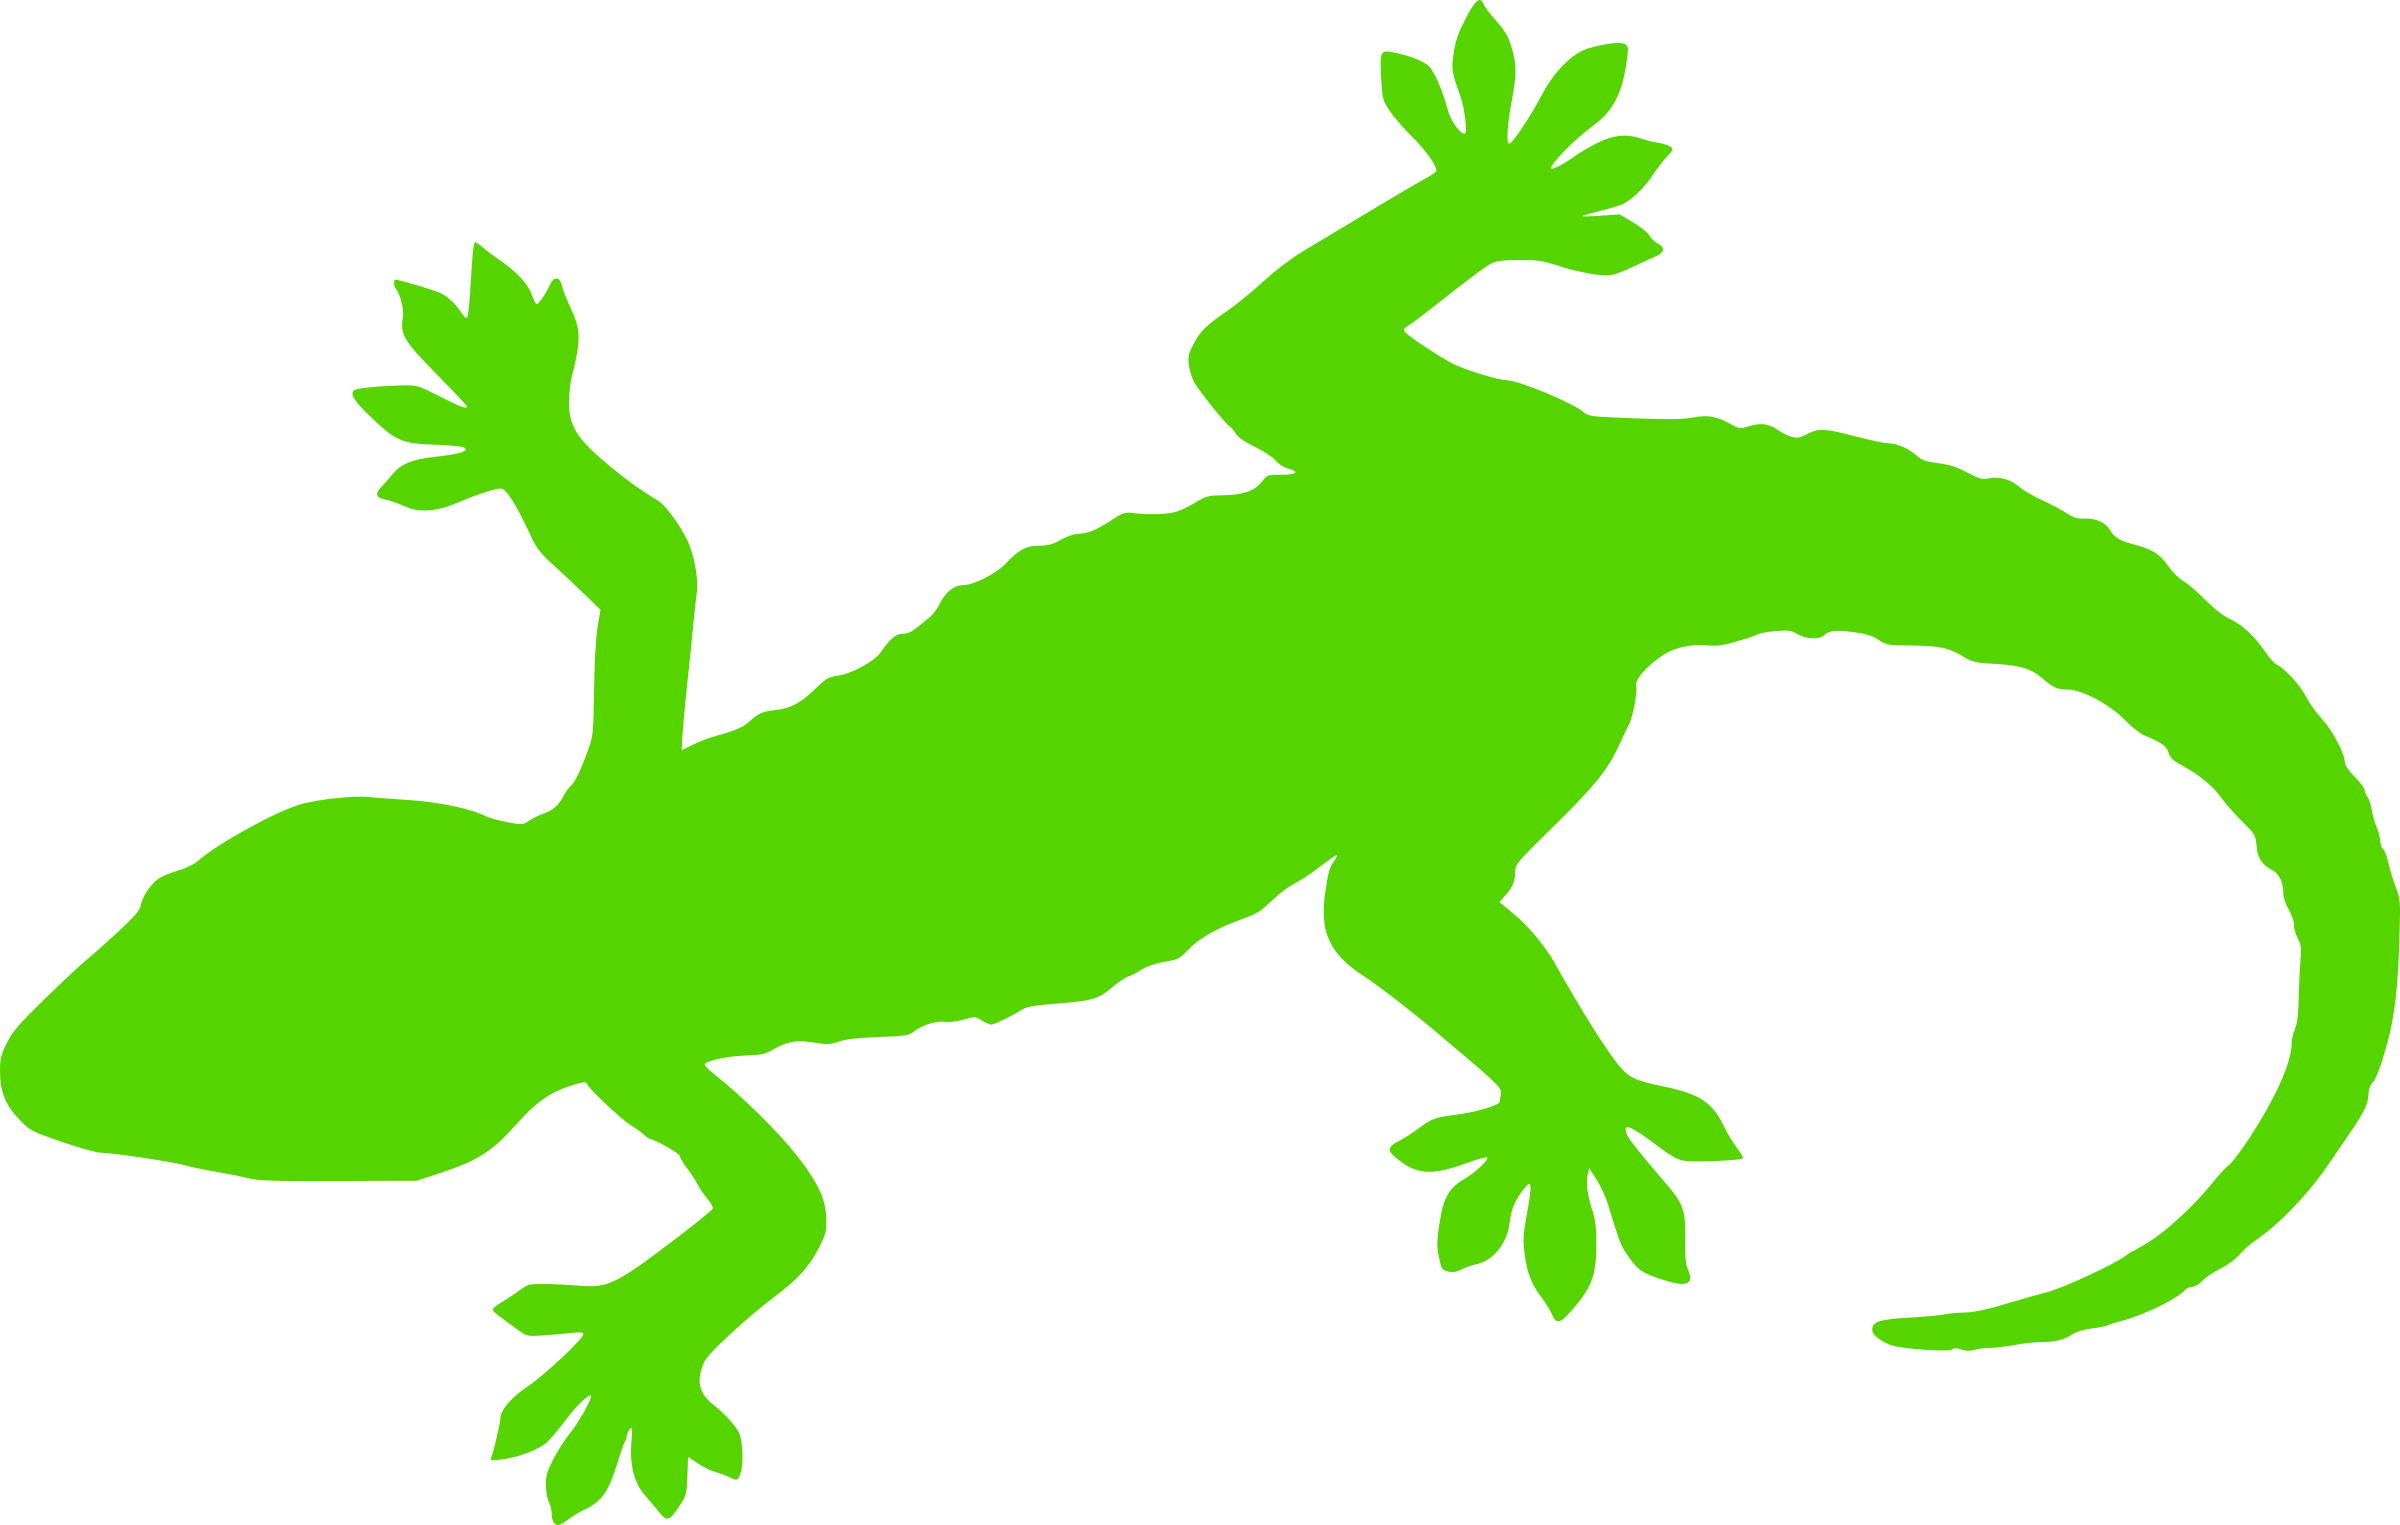 vector download Green silhouette icons png. Gecko clipart